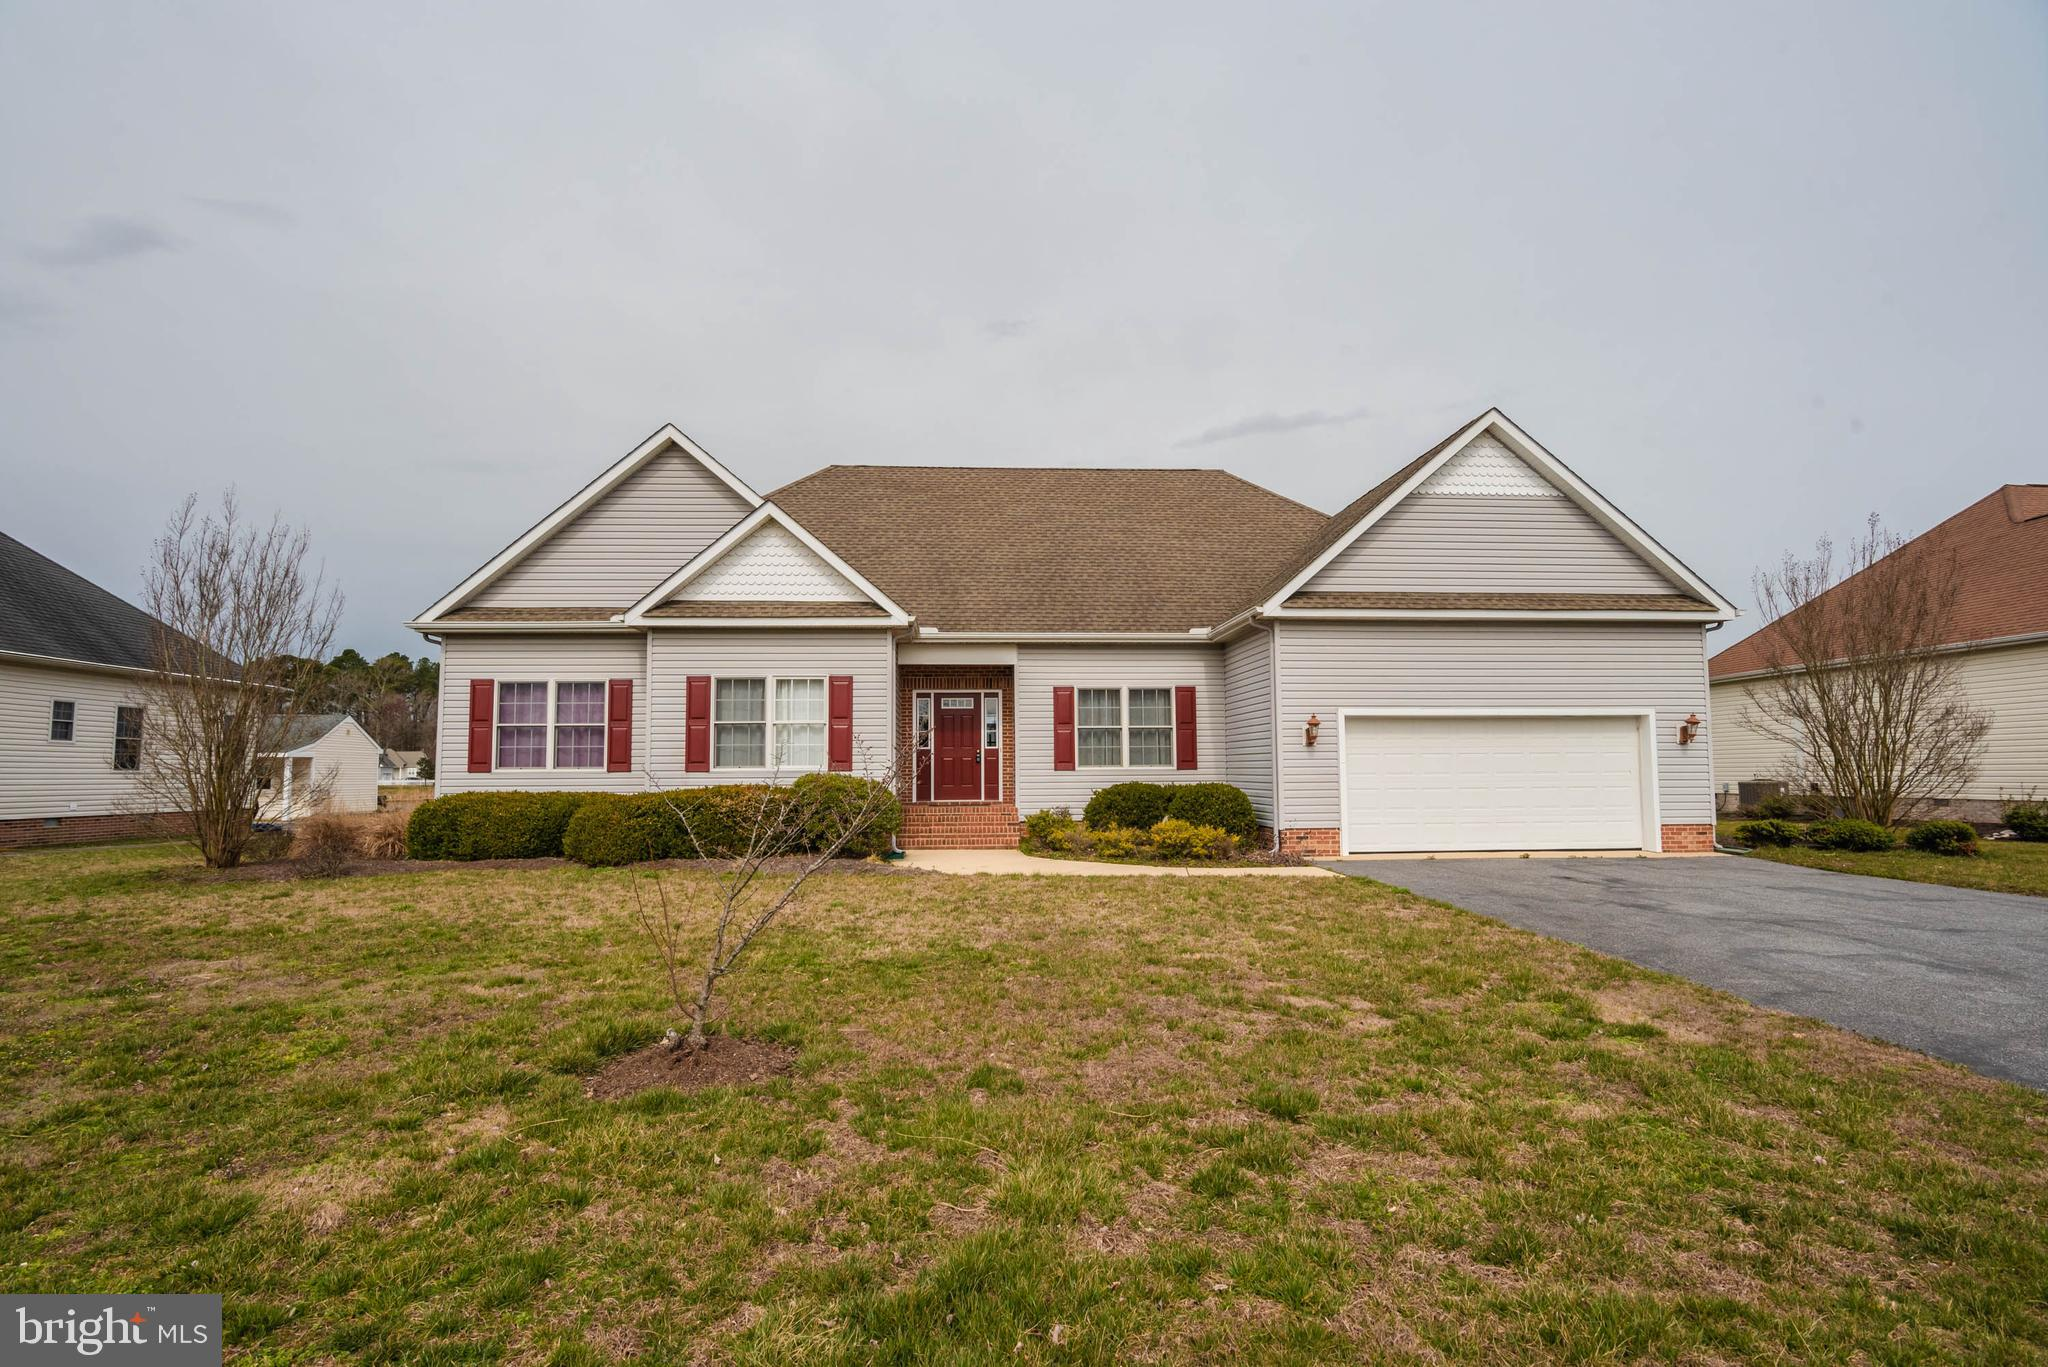 171 Nina Ln, Fruitland, MD, 21826